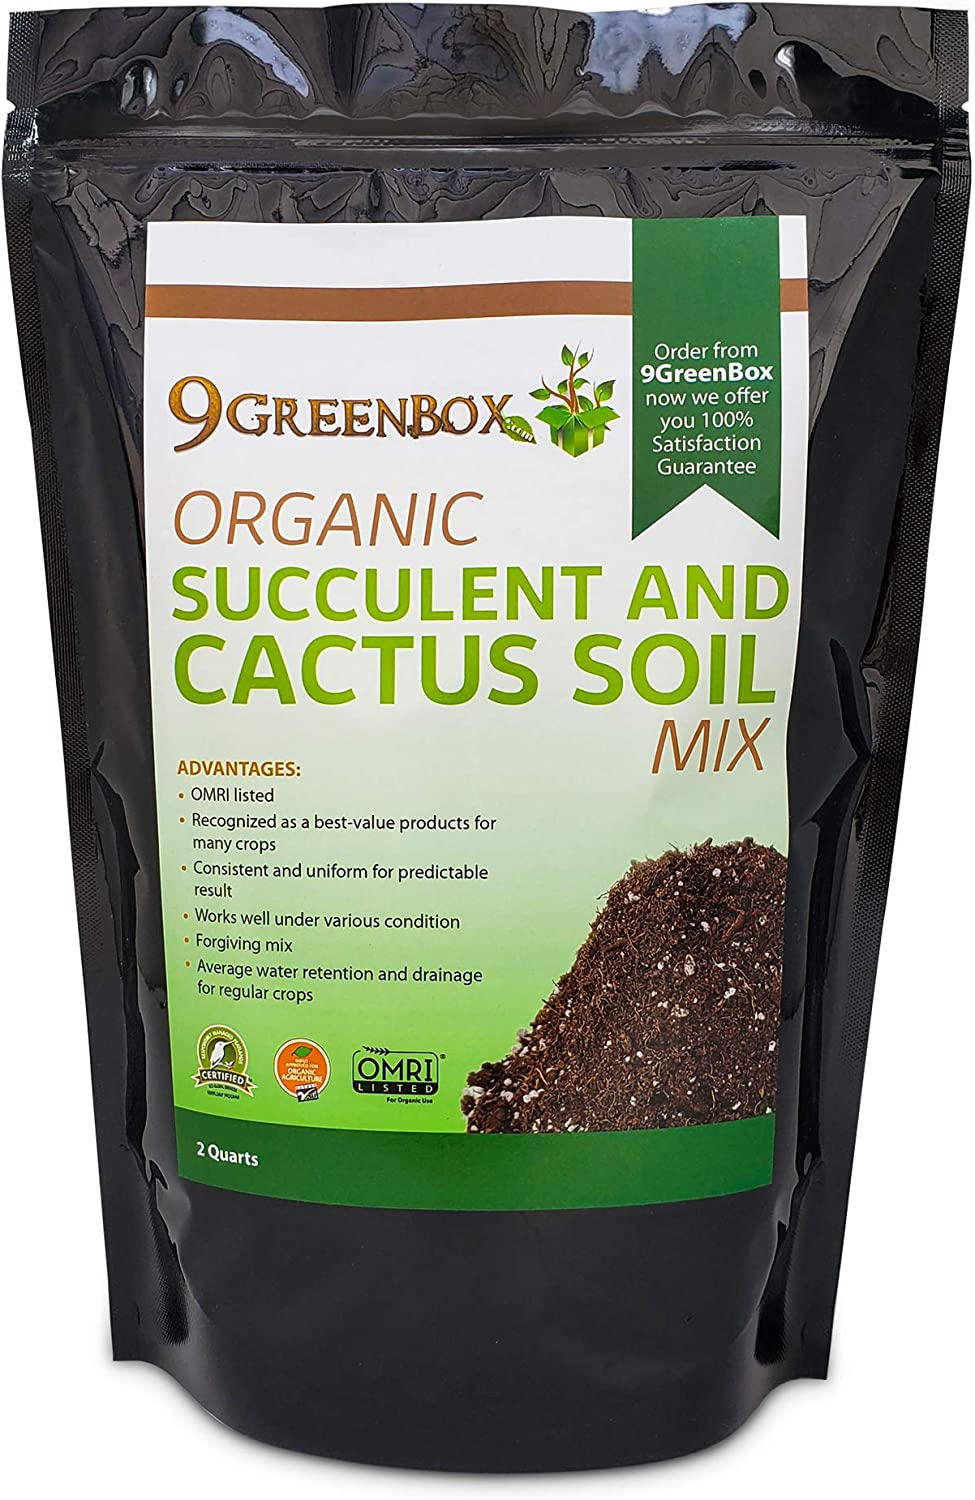 9Greenbox Organic Succulent and Cactus Soil Mix - OMRI Listed 100% Organic and All-Natural Gardening, Potting Blend - Well-Draining Substrate for Planting Indoor Plants, Herbs, Vegetables - 2-Quart